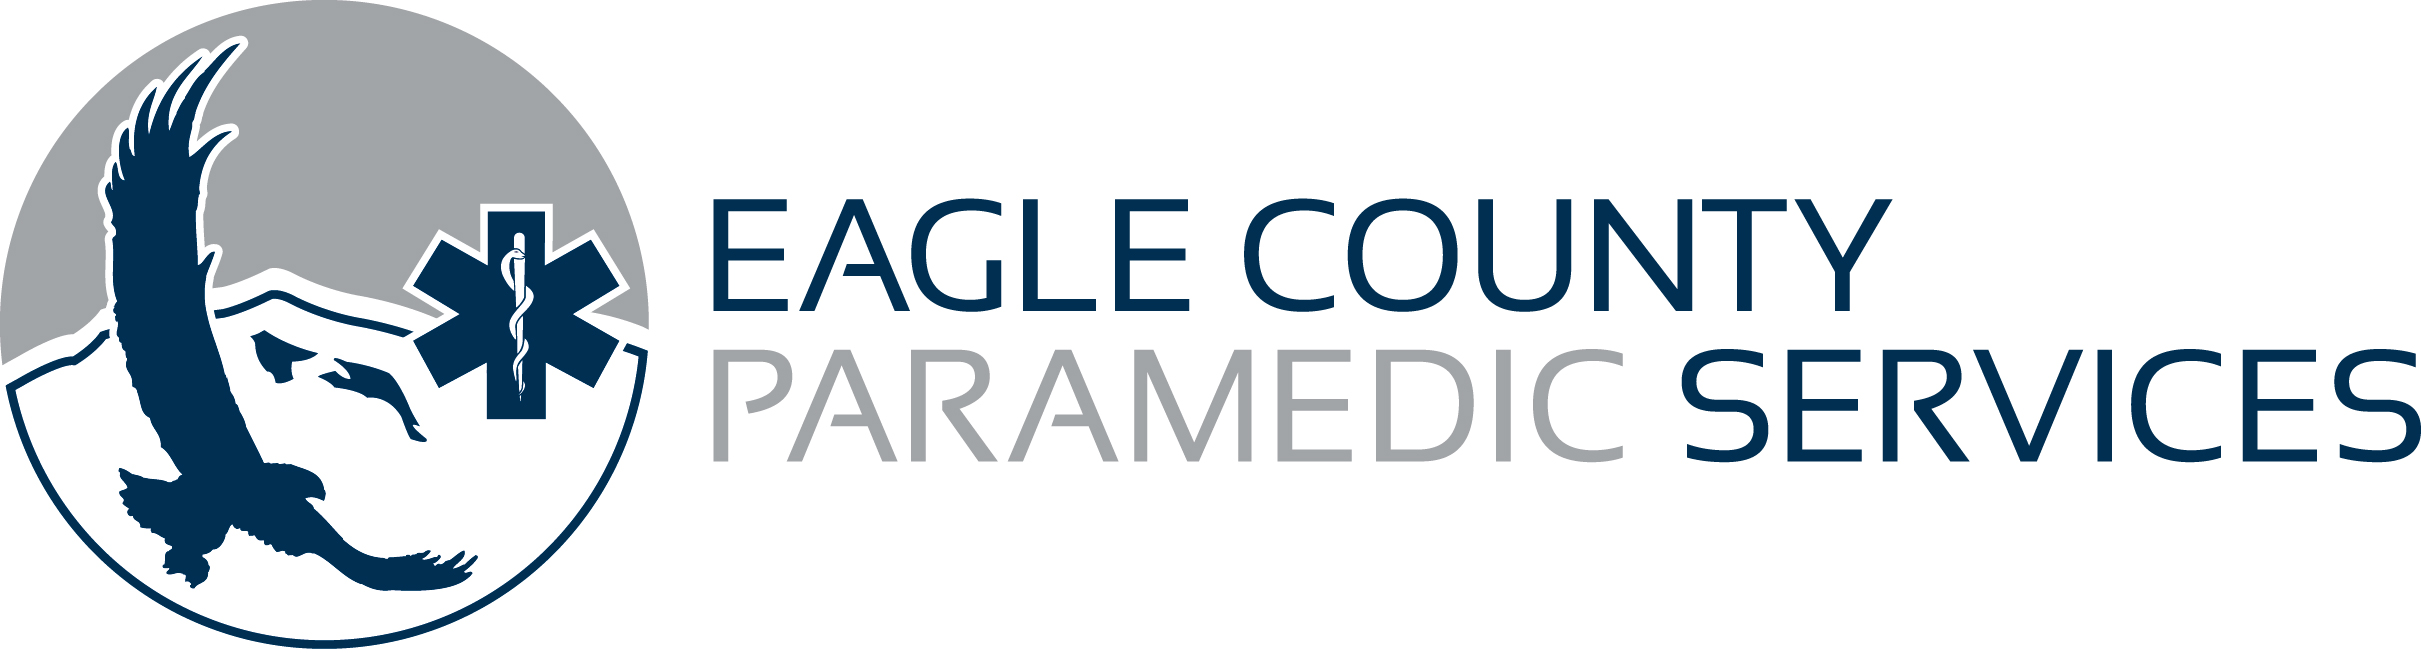 Eagle County Paramedic Services